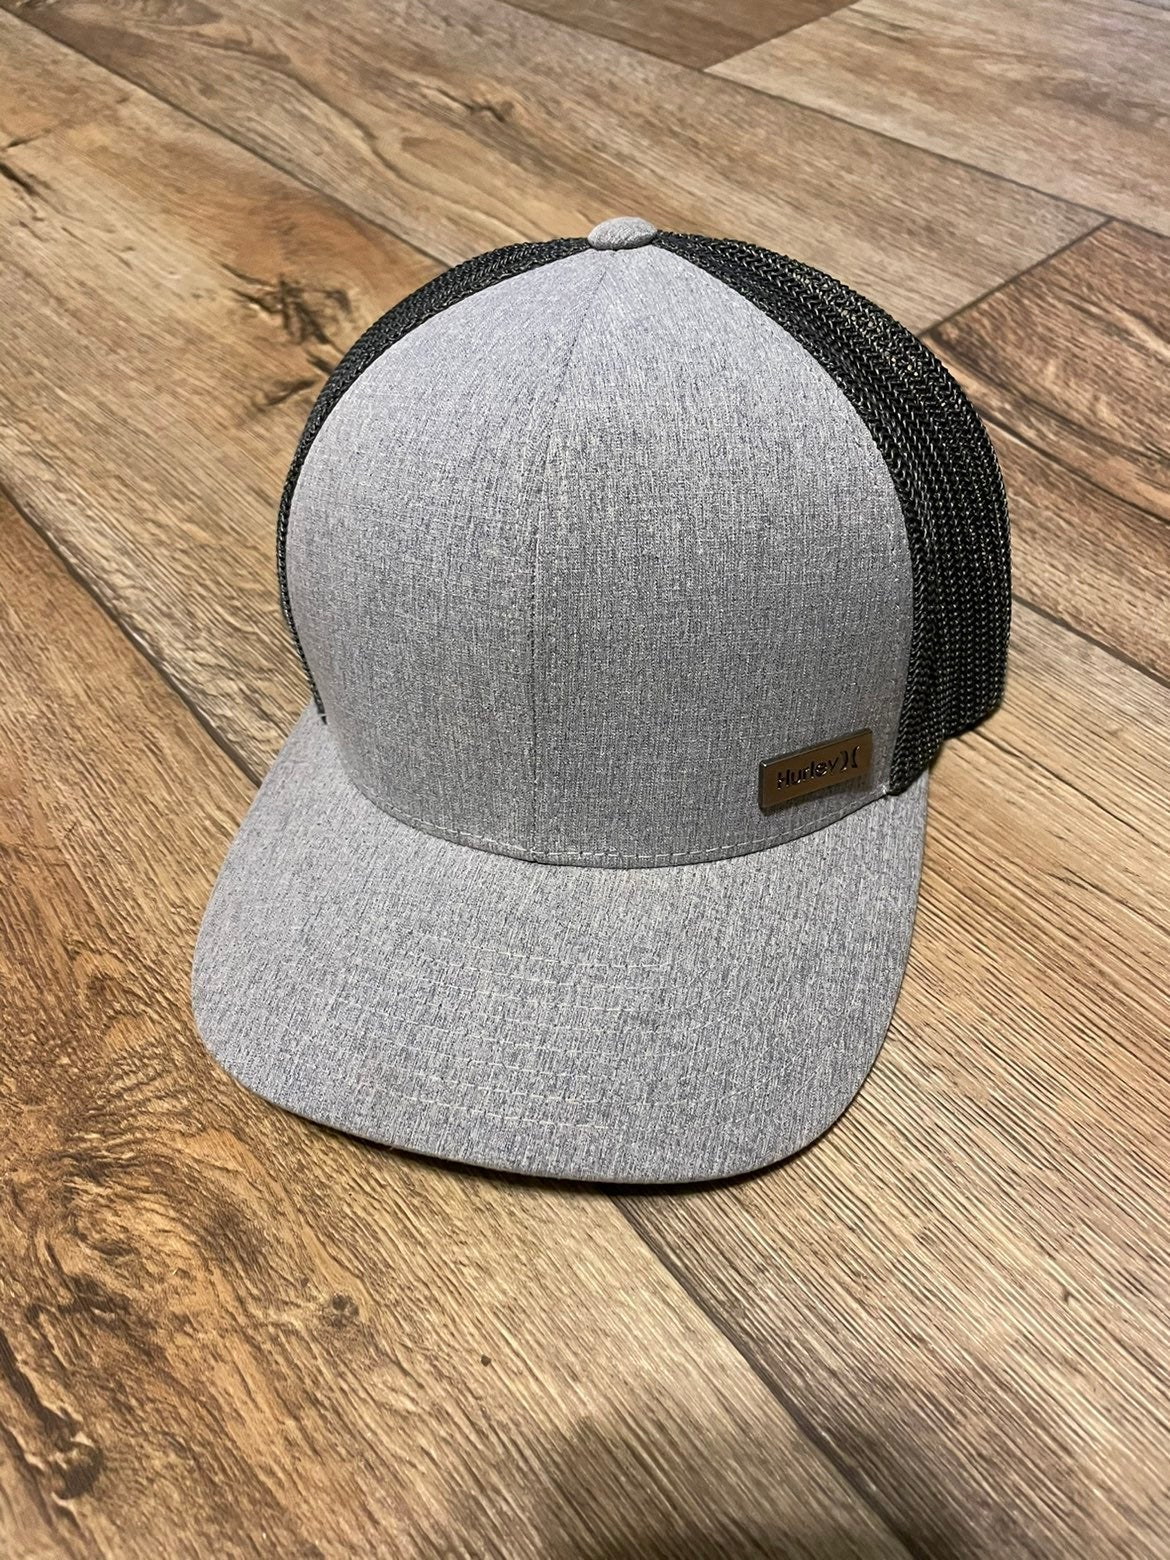 Like New Hurley Flexfit Fitted Hat S/M